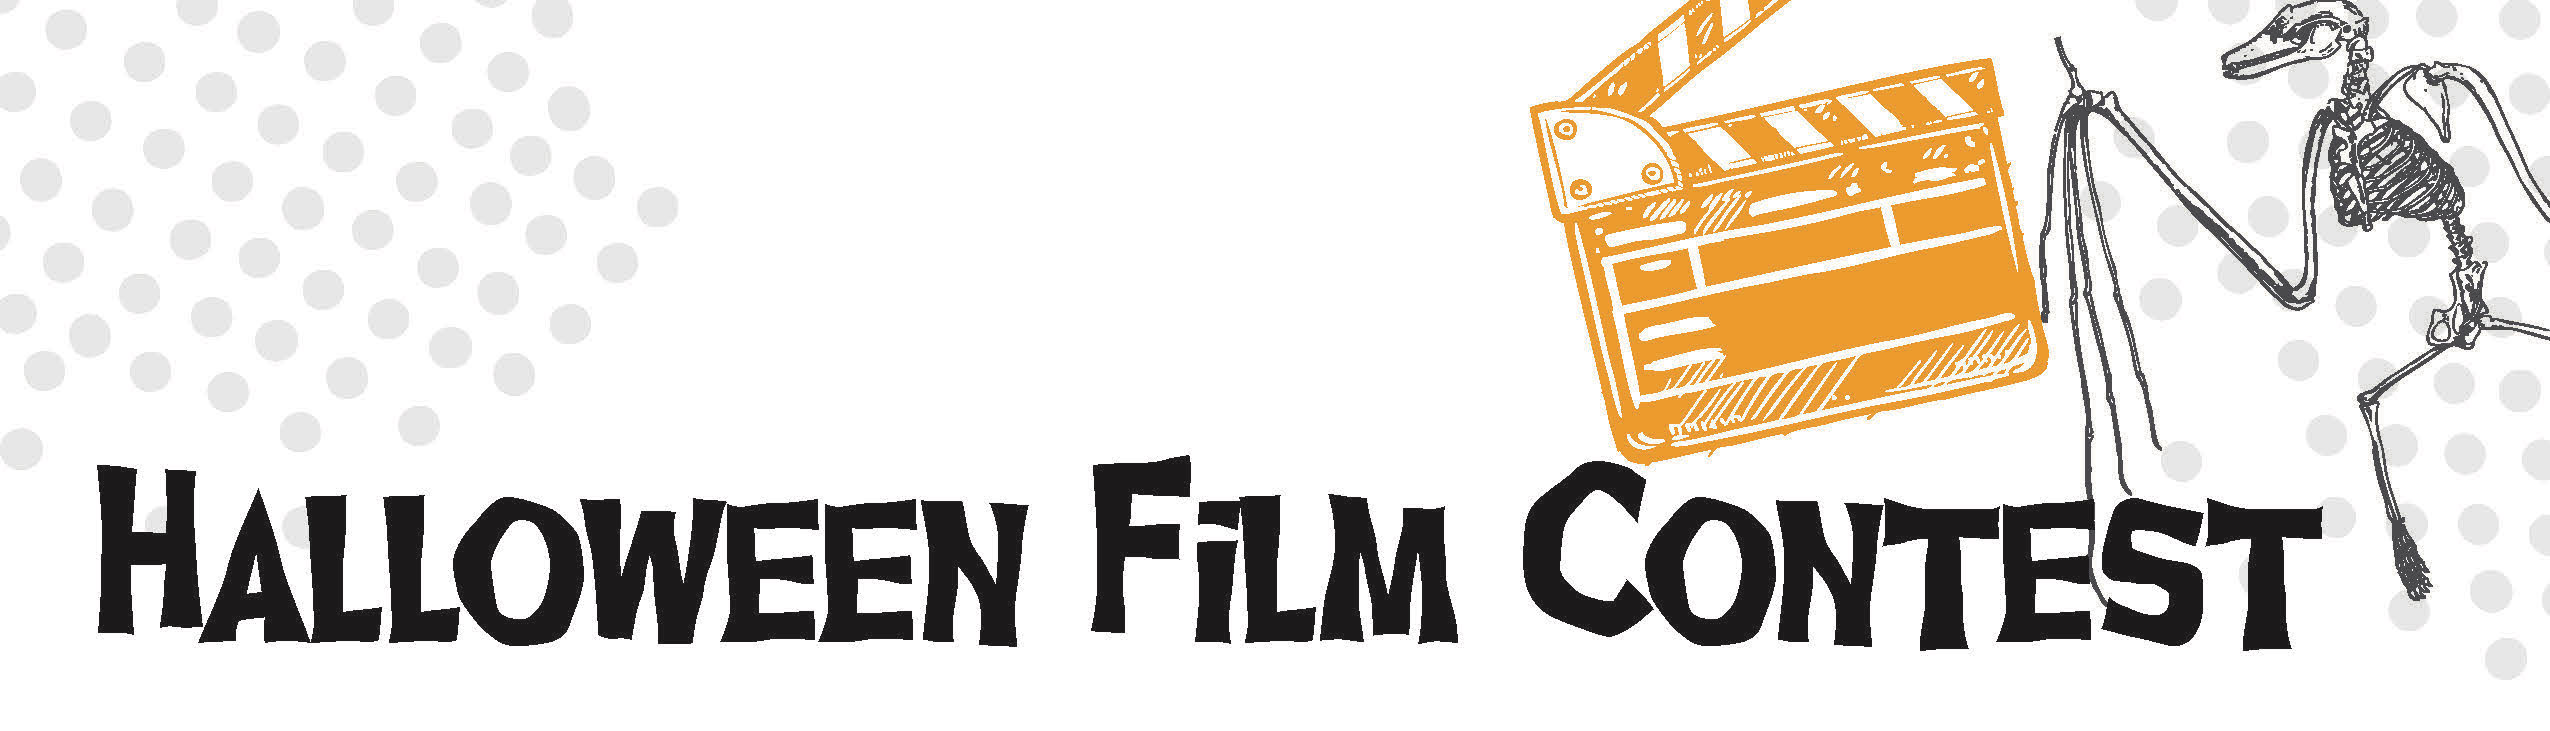 Halloween Film Contest promotion with skelton and spiderweb